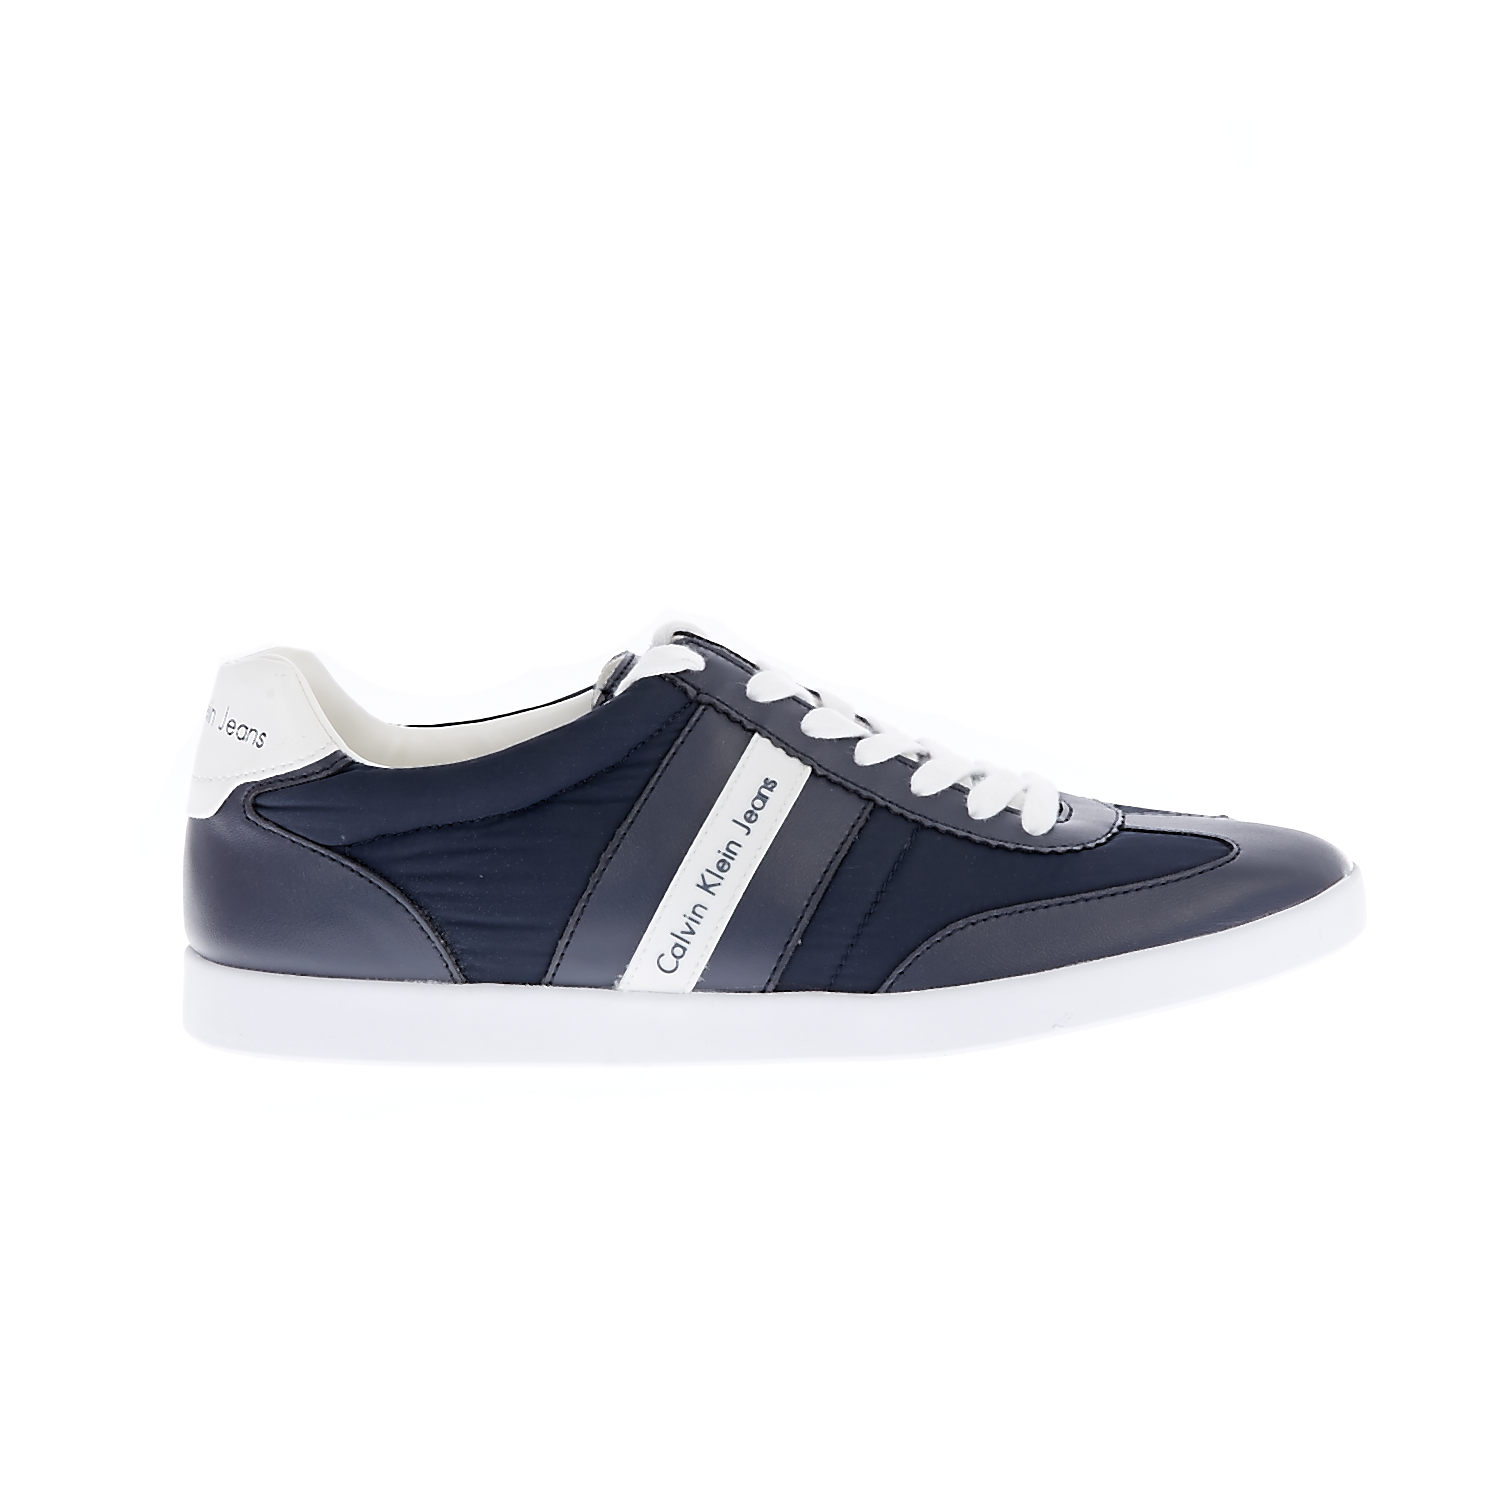 CALVIN KLEIN JEANS - Ανδρικά sneakers CALVIN KLEIN JEANS ACE μπλε ανδρικά παπούτσια sneakers